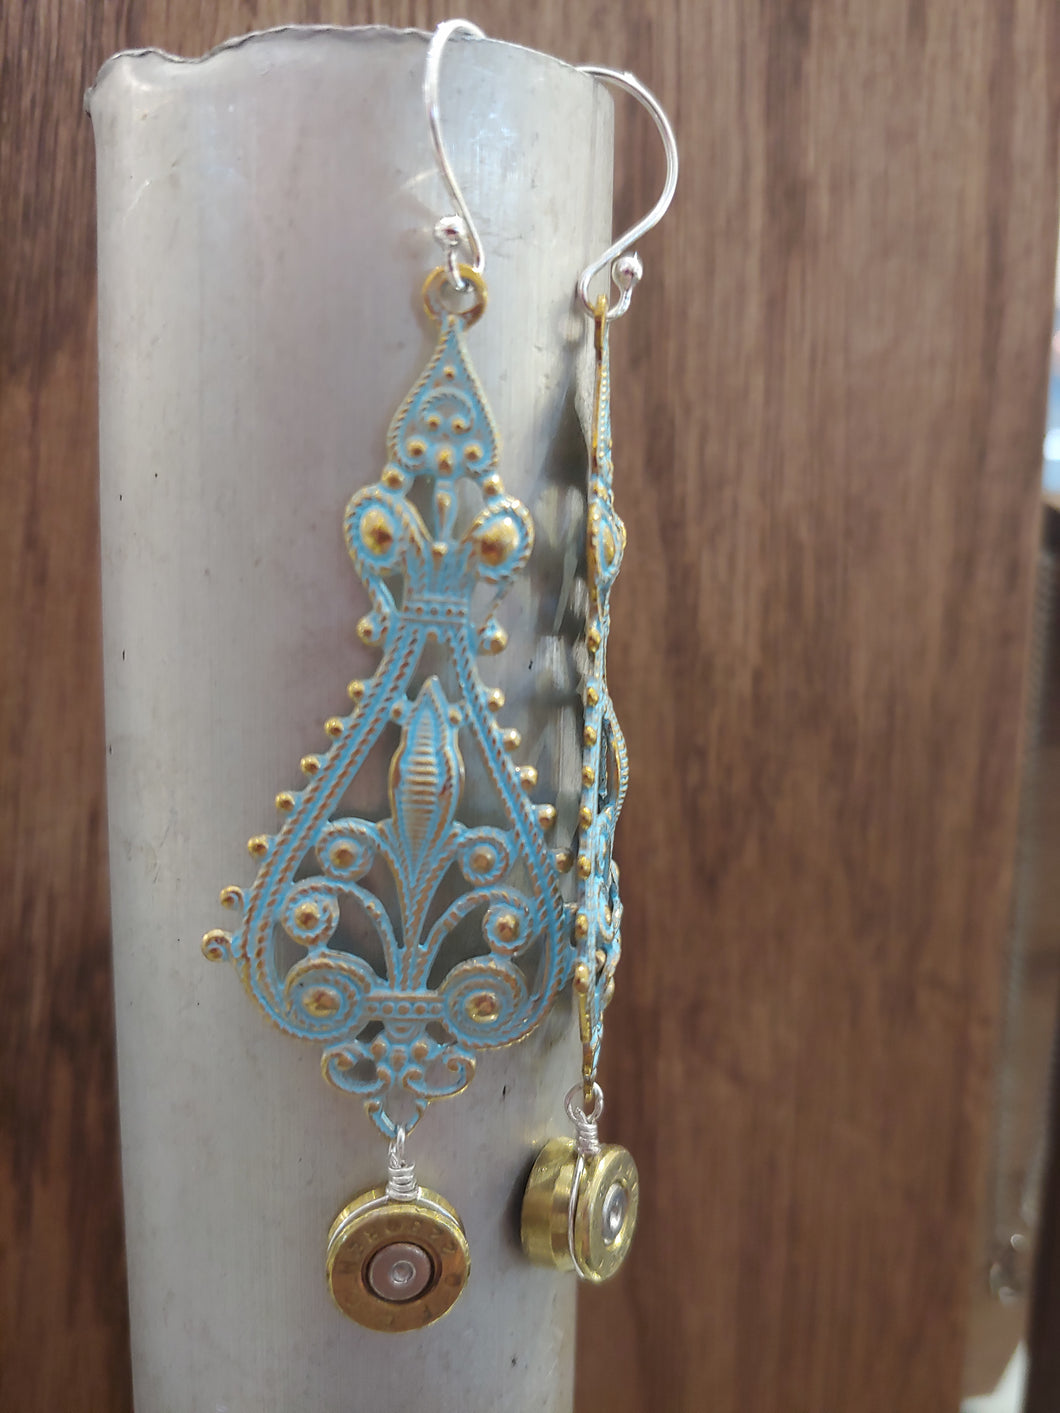 Brass .223 Bullet Casings with Chandelier Charm